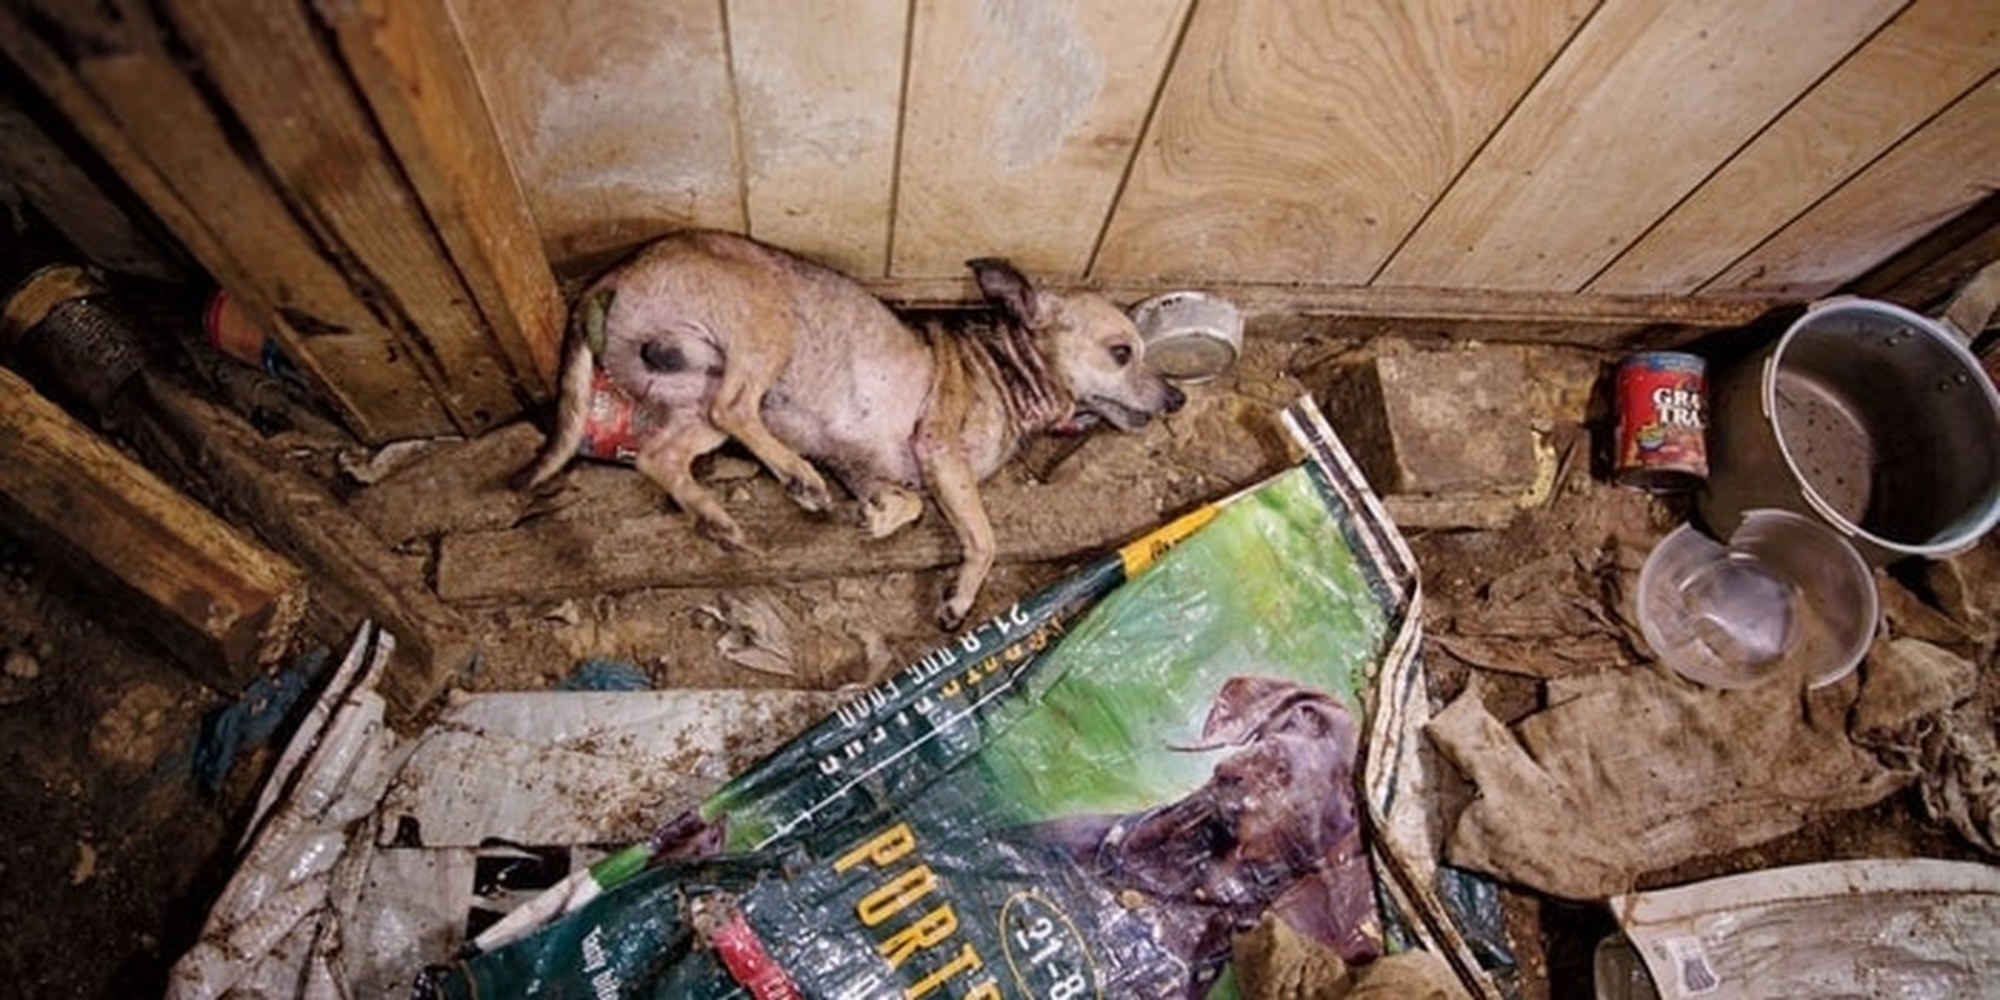 U S Government Is Helping Puppy Mills Hide Animal Cruelty